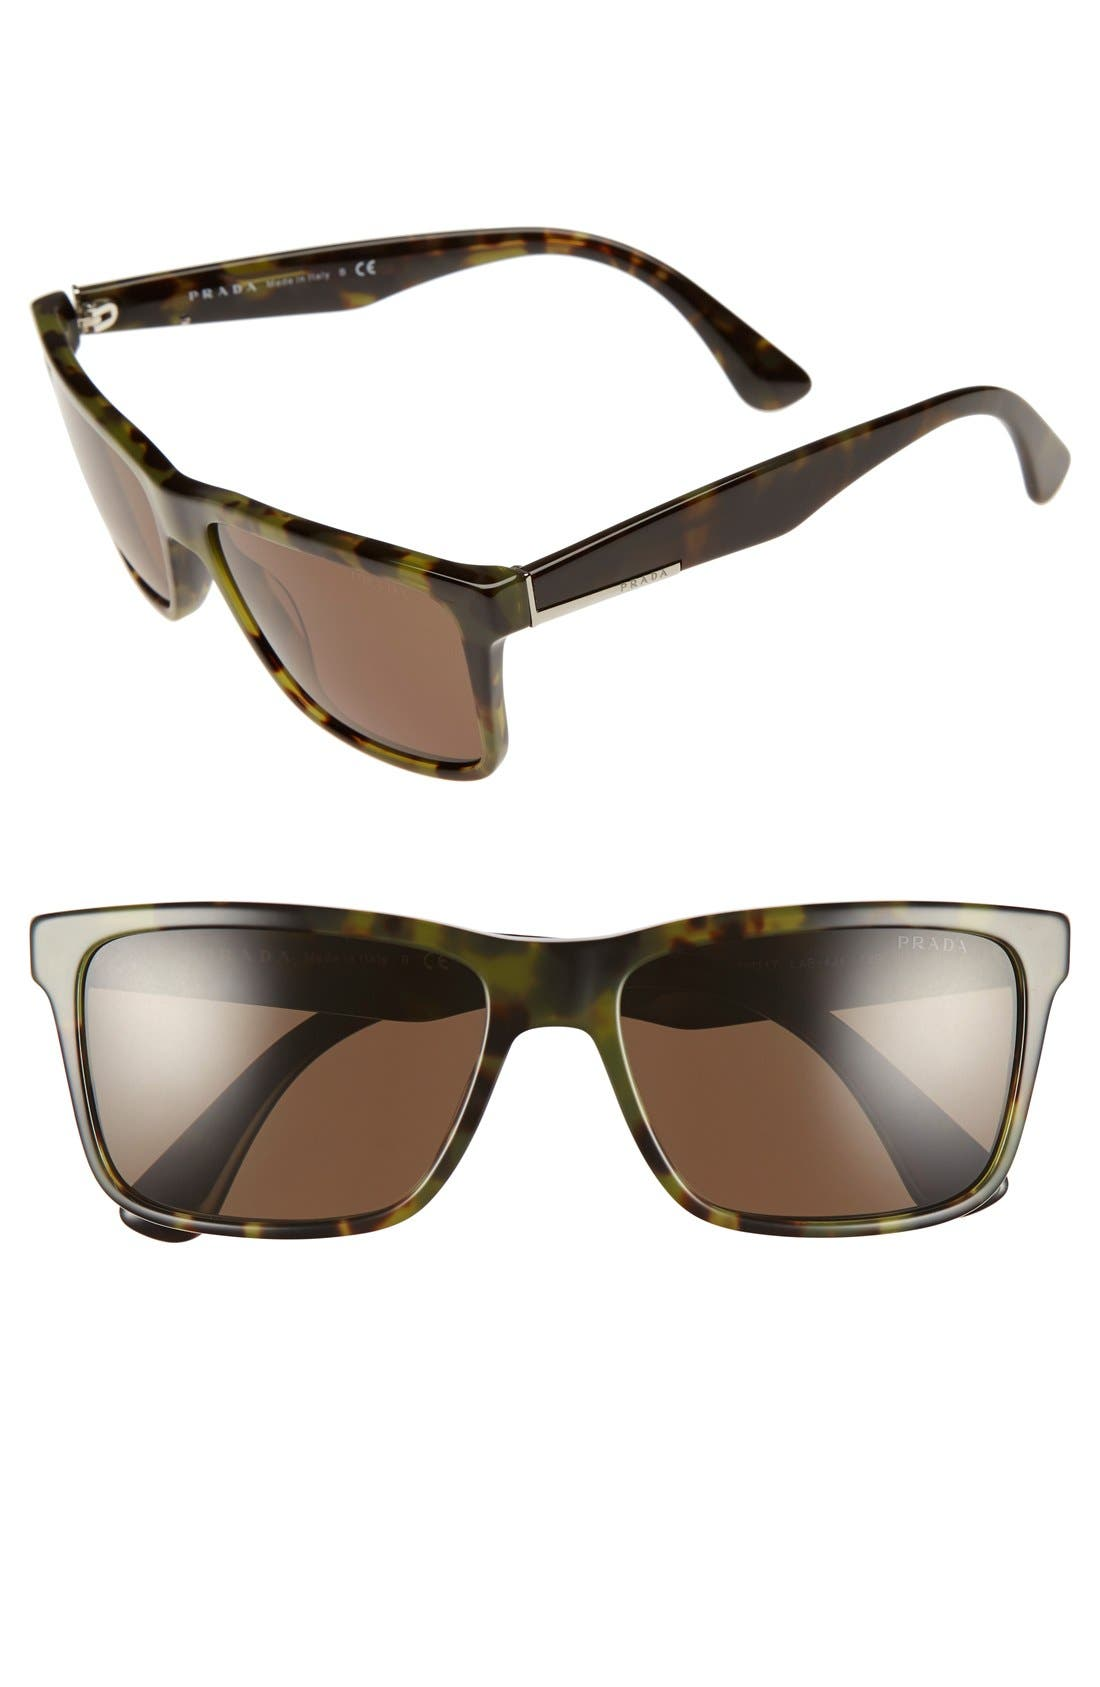 Prada 59mm Square Sunglasses